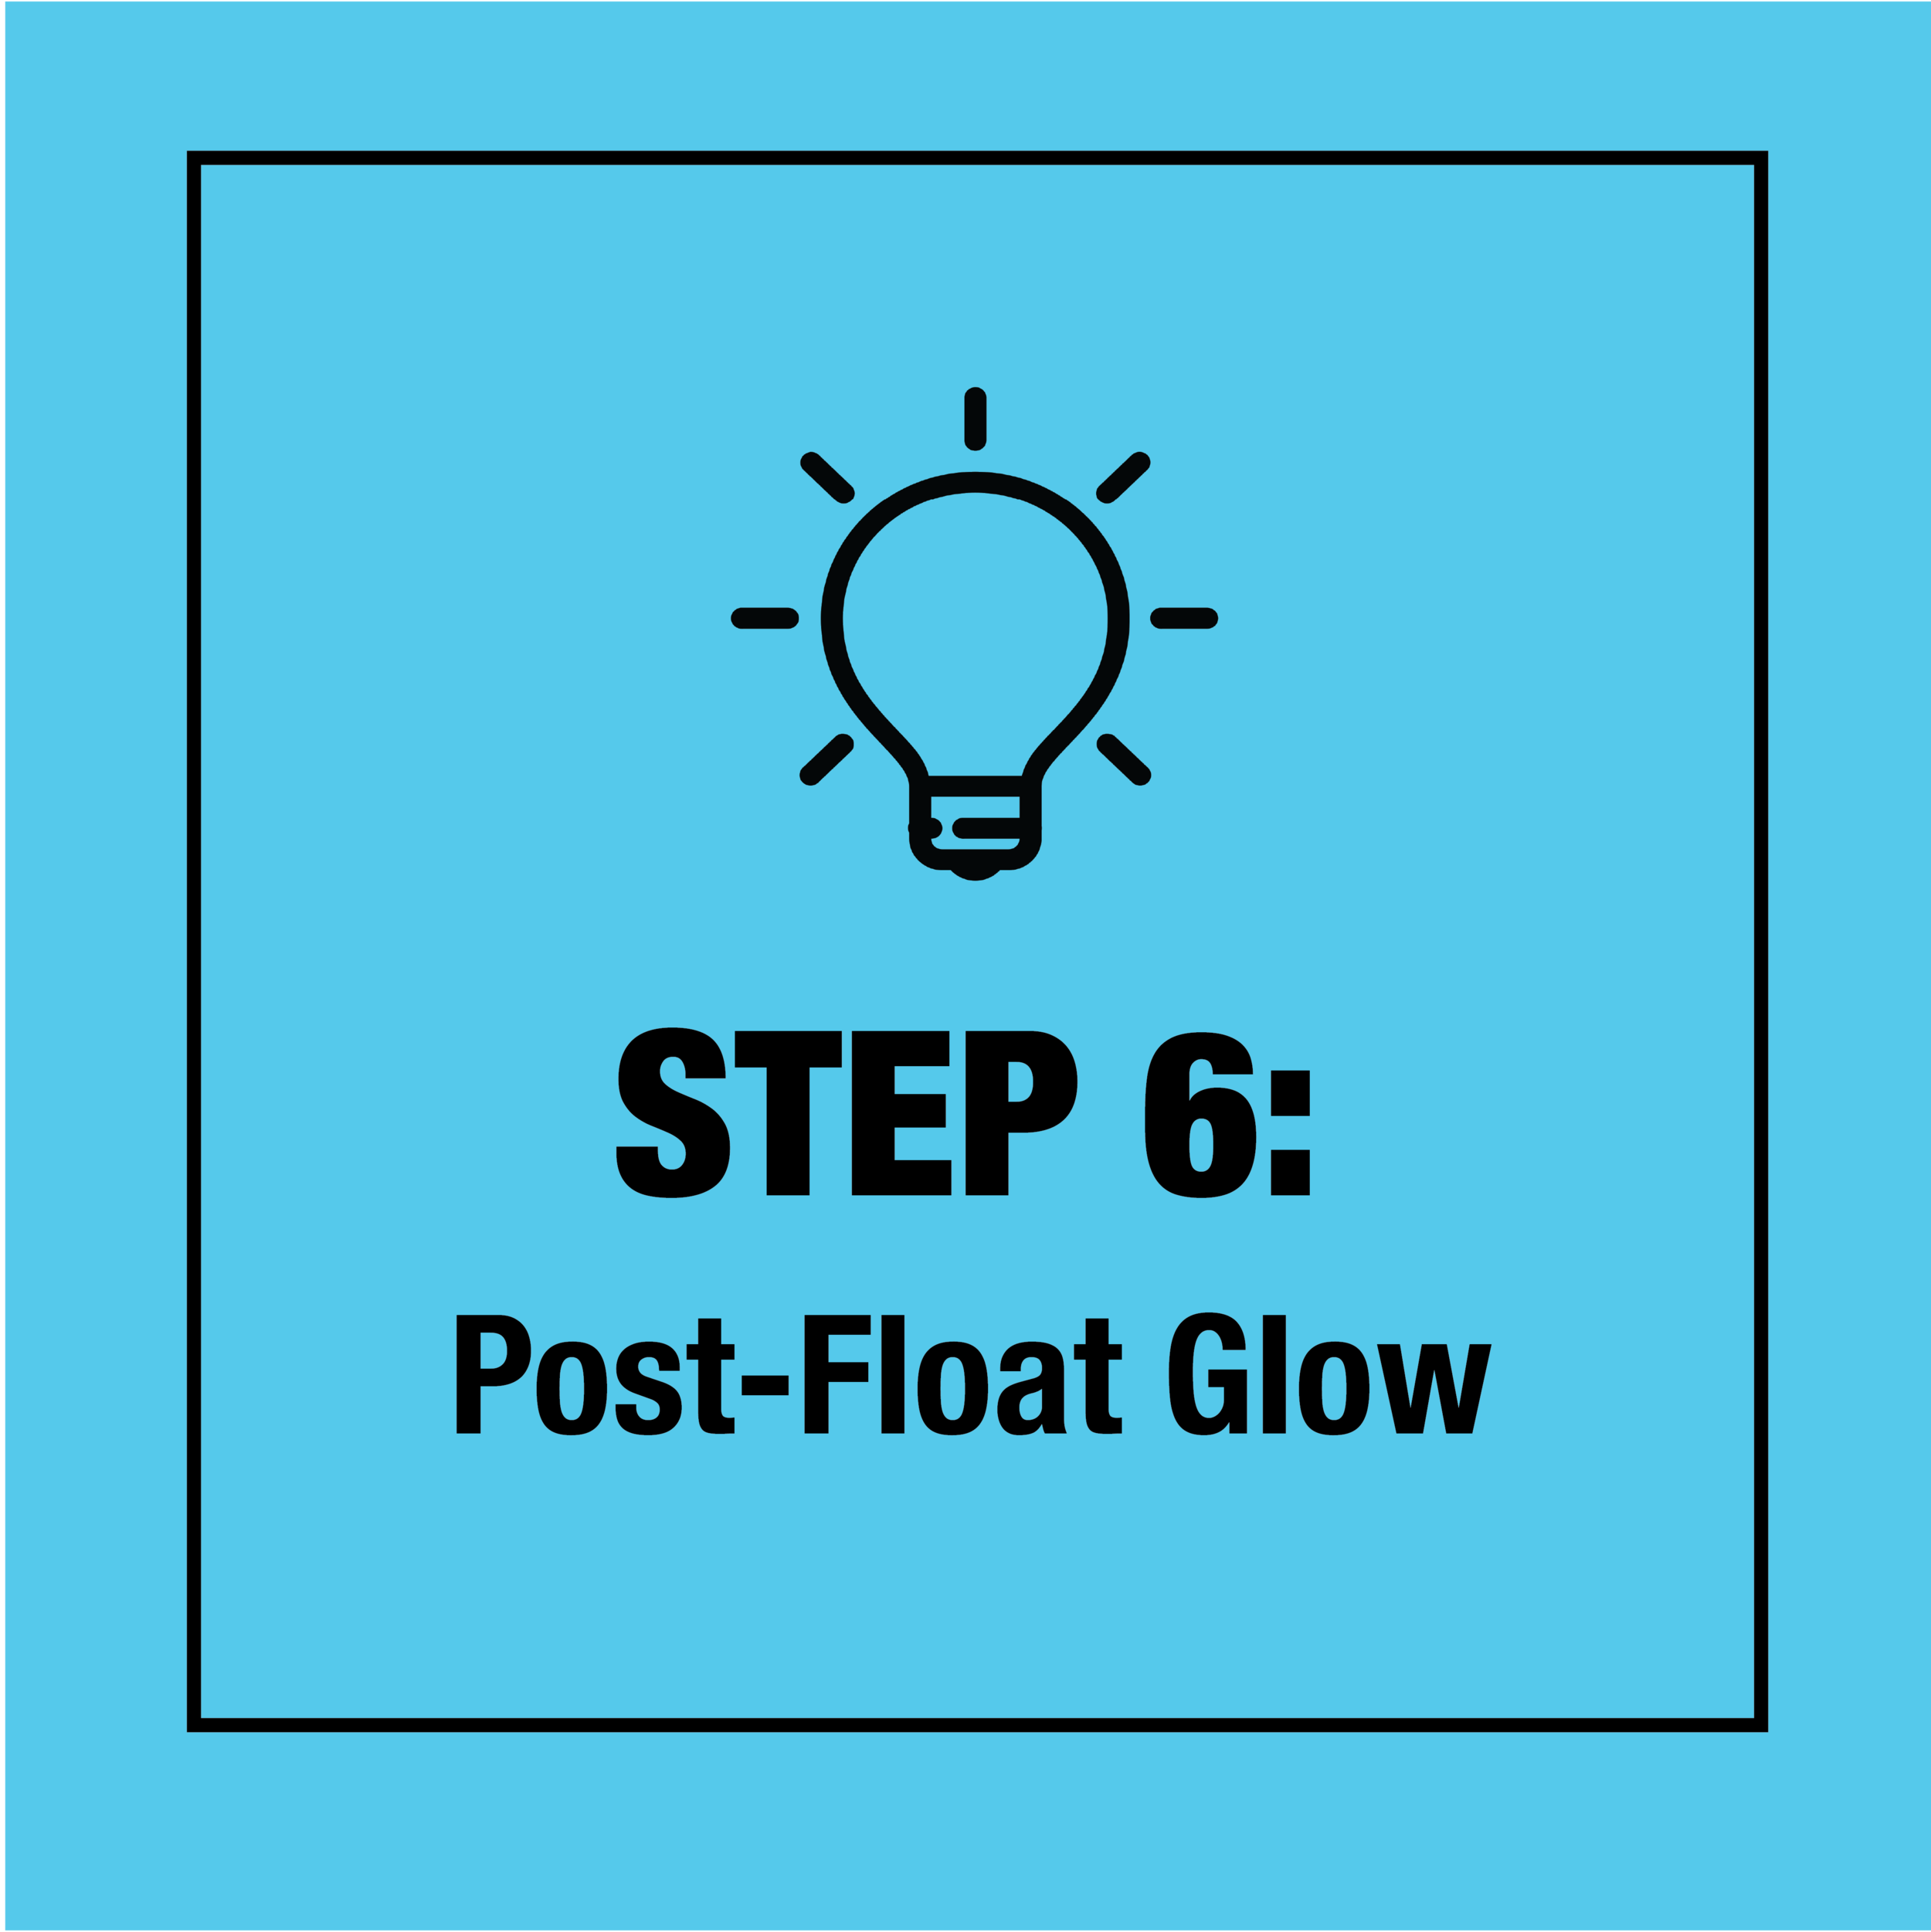 Exit the water, shower, chill in our lounge area, share your experience, and bask in your post-float glow!